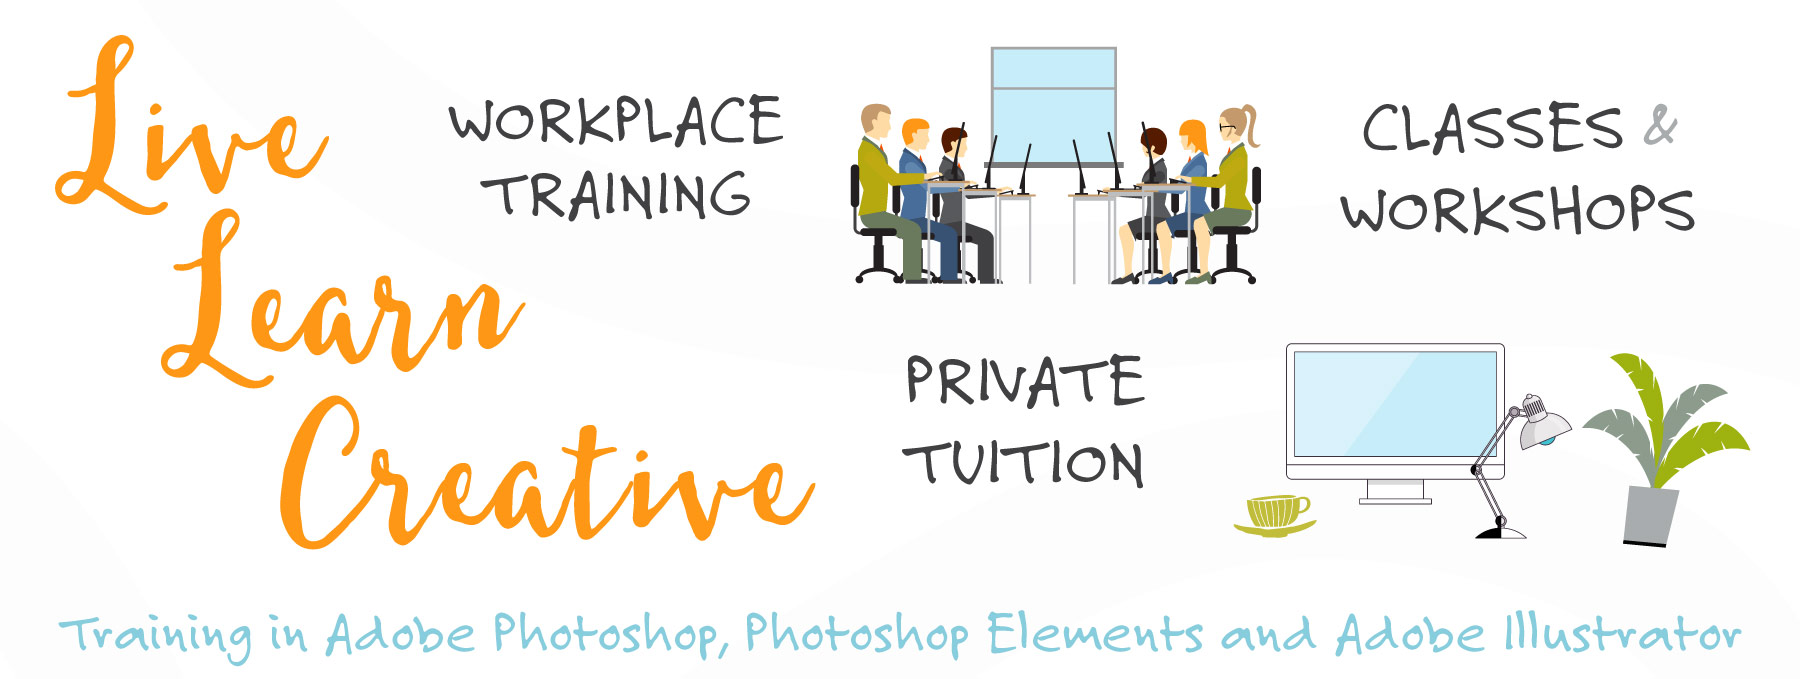 Photoshop and Illustrator Workplace Training, Private Tuition, Courses and Workshops_Live Learn Creative Sydney